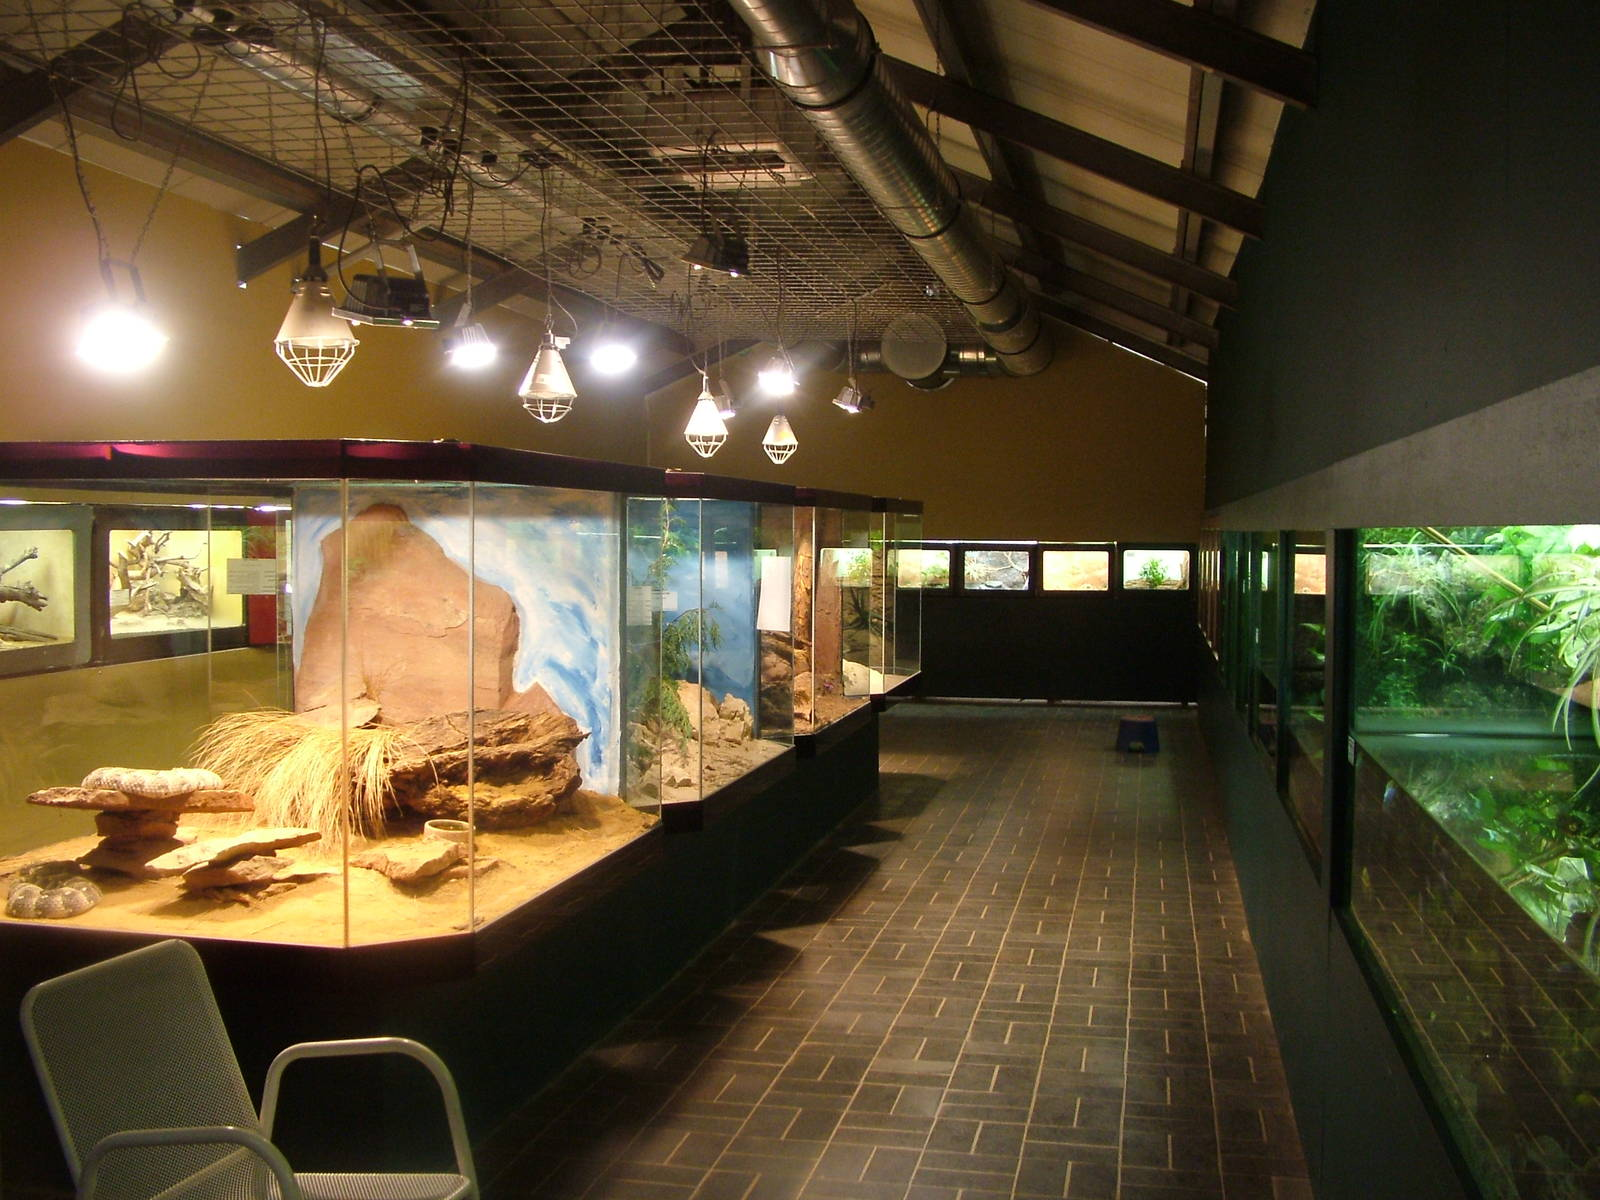 Reptile Room At Darmstadt 30 08 10 Zoochat